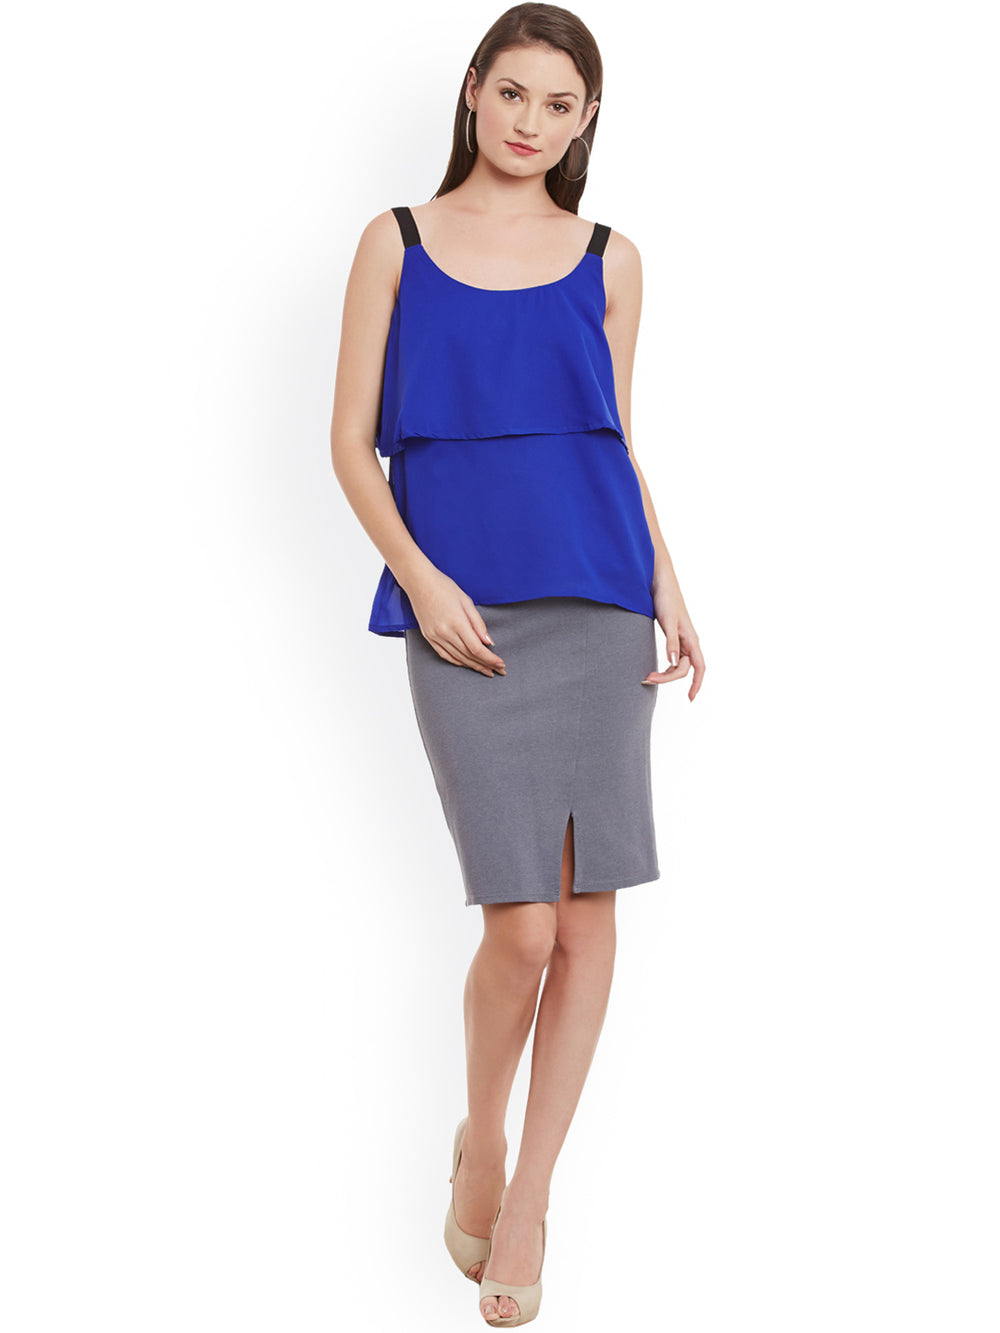 eyelet Women Blue Solid Layered Top